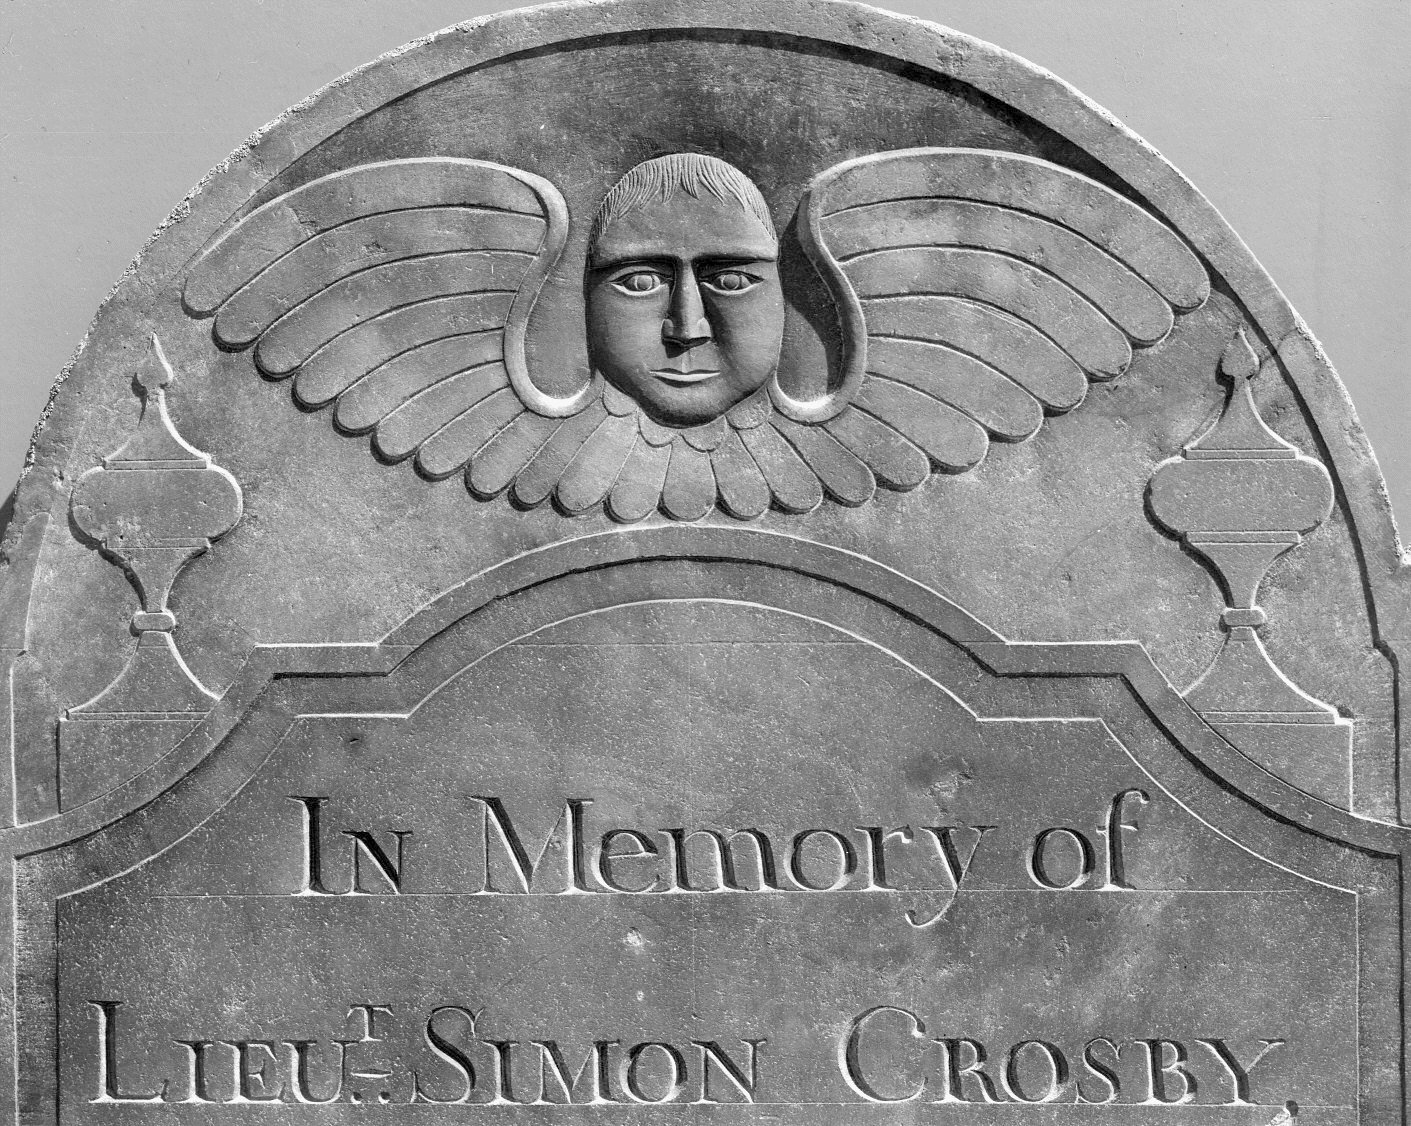 Crosby, Lieut. Simon